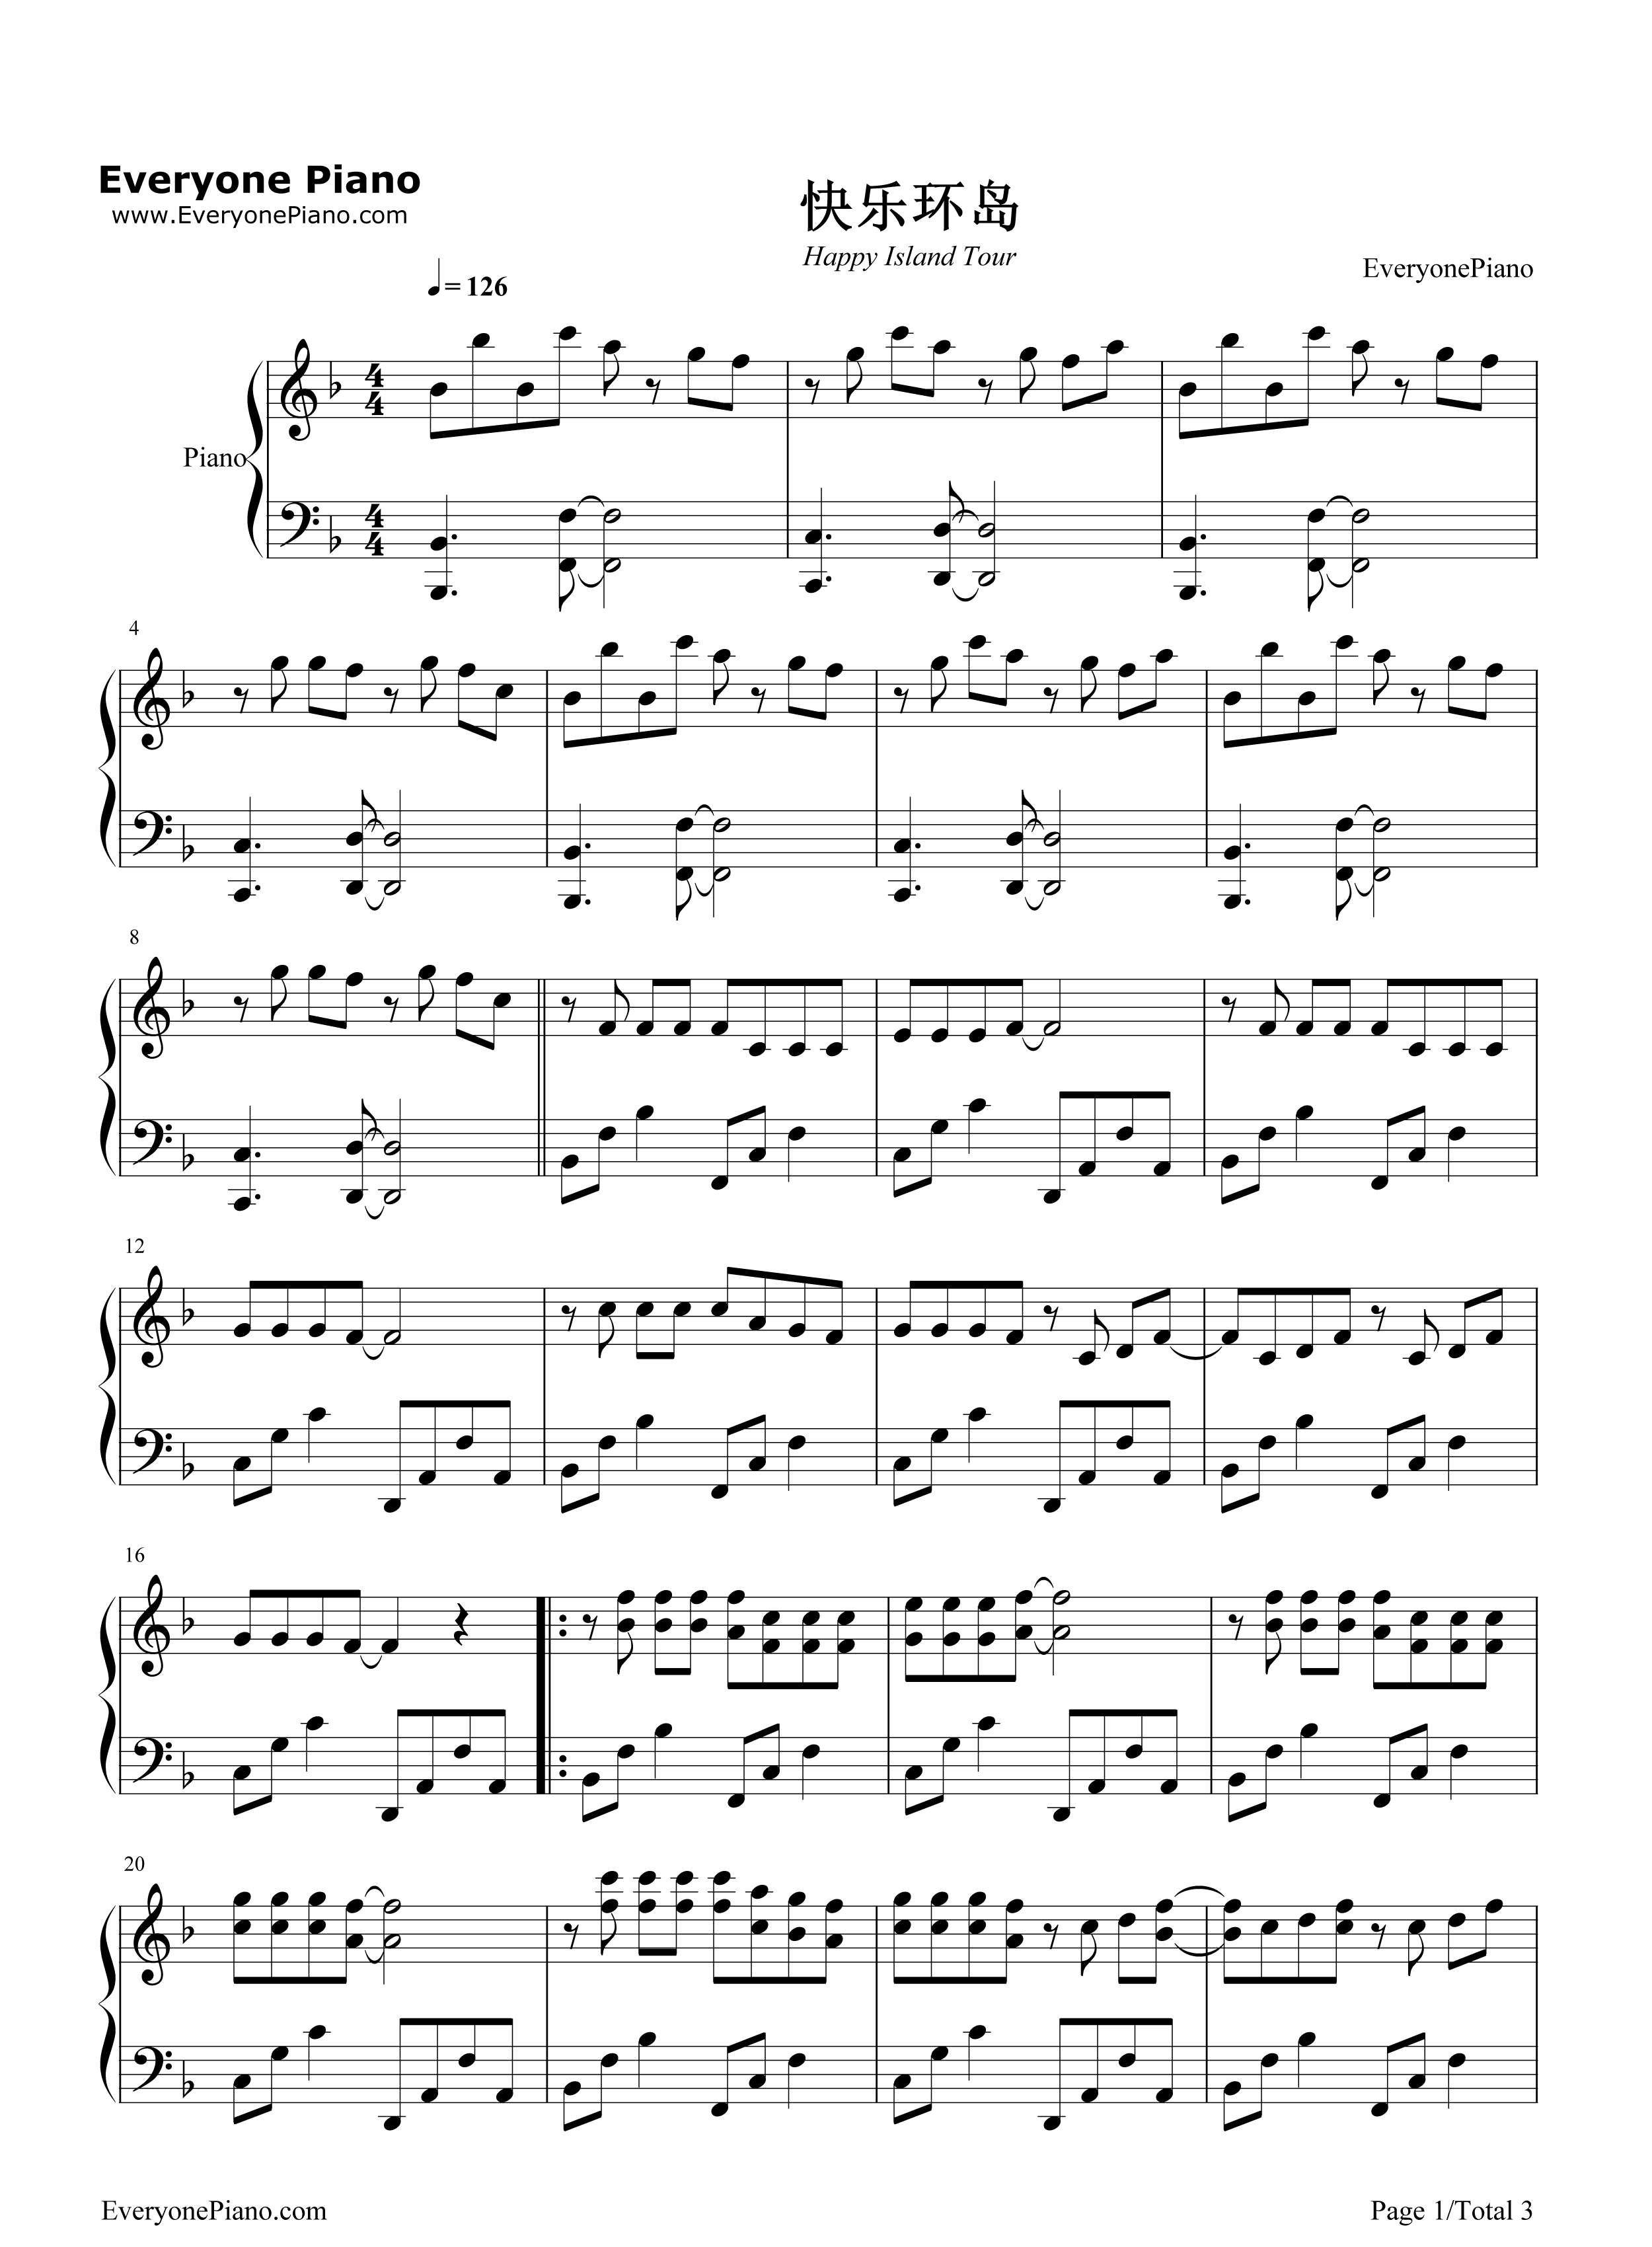 ... Tour-TFBOYS Stave Preview 1-Free Piano Sheet Music & Piano Chords